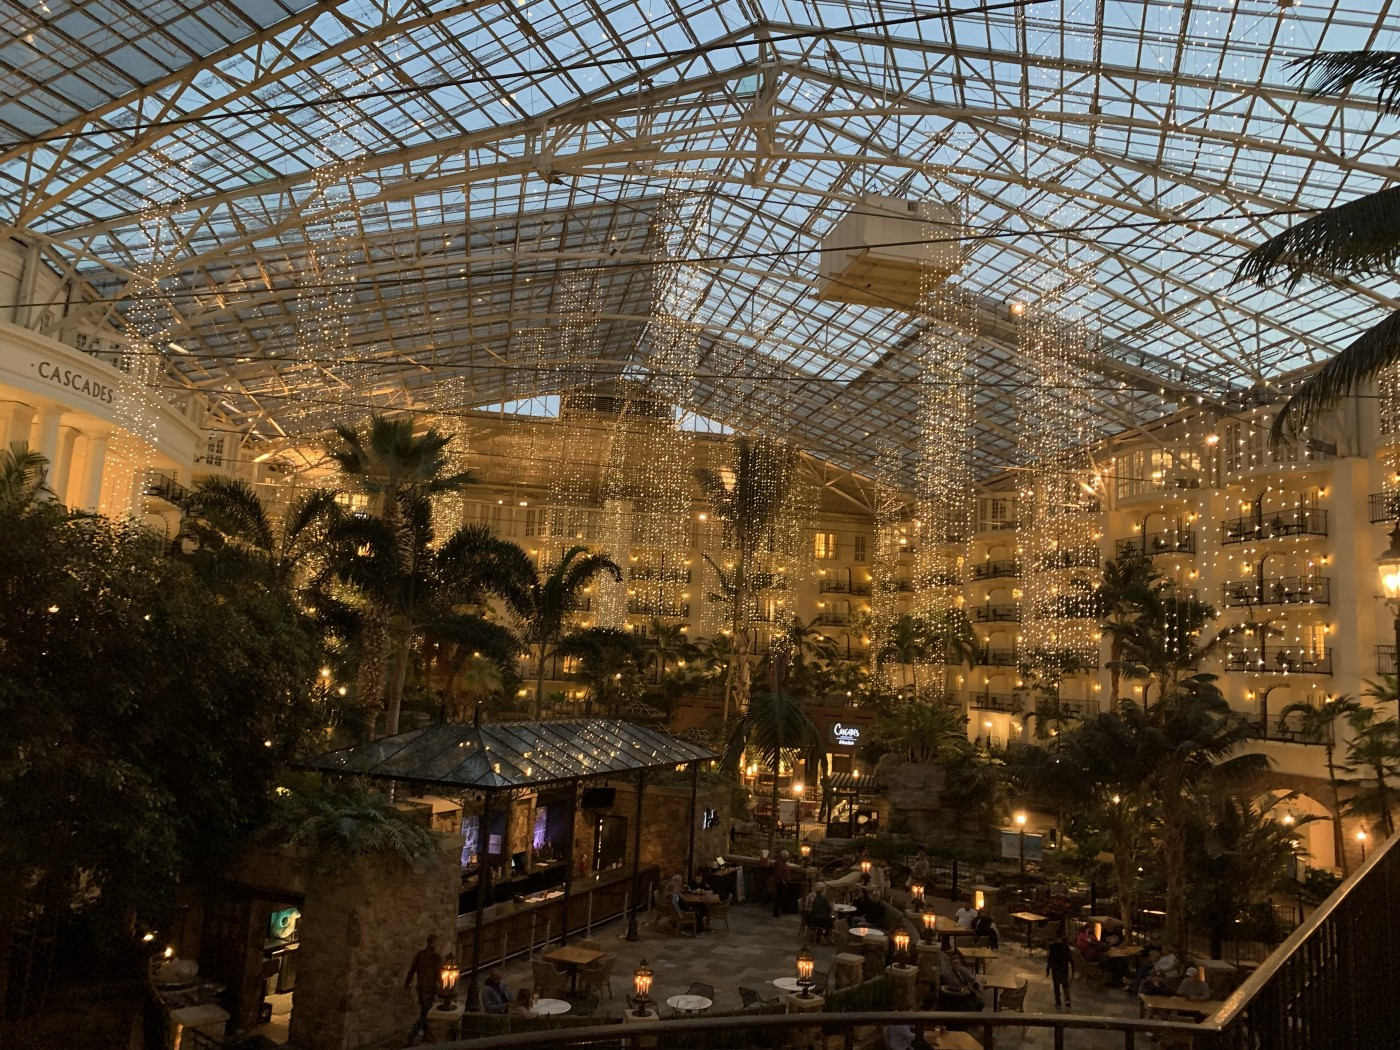 An indoor patio surrounded by lush vegetation within the center of a resort, surrounded by hotel rooms towering above the ground. Glass ceiling and fairylights hanging from above.